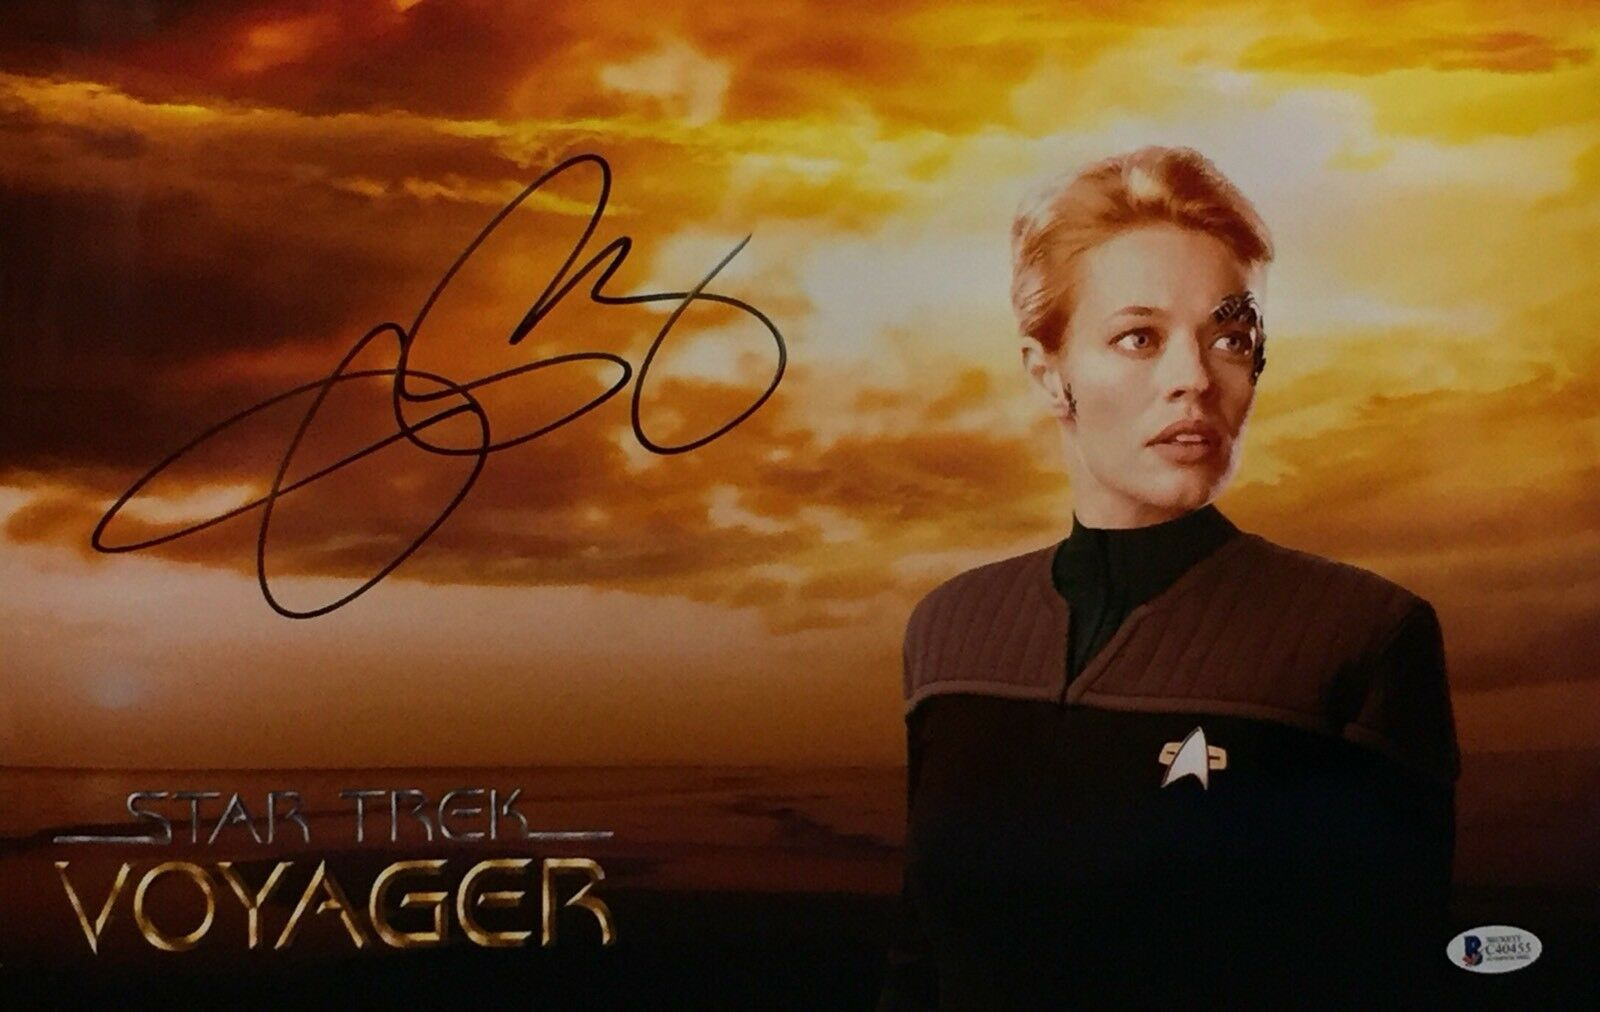 Jeri Ryan Signed Star Trek Voyager 11x17 Metallic/Chrome Photo Beckett C40455